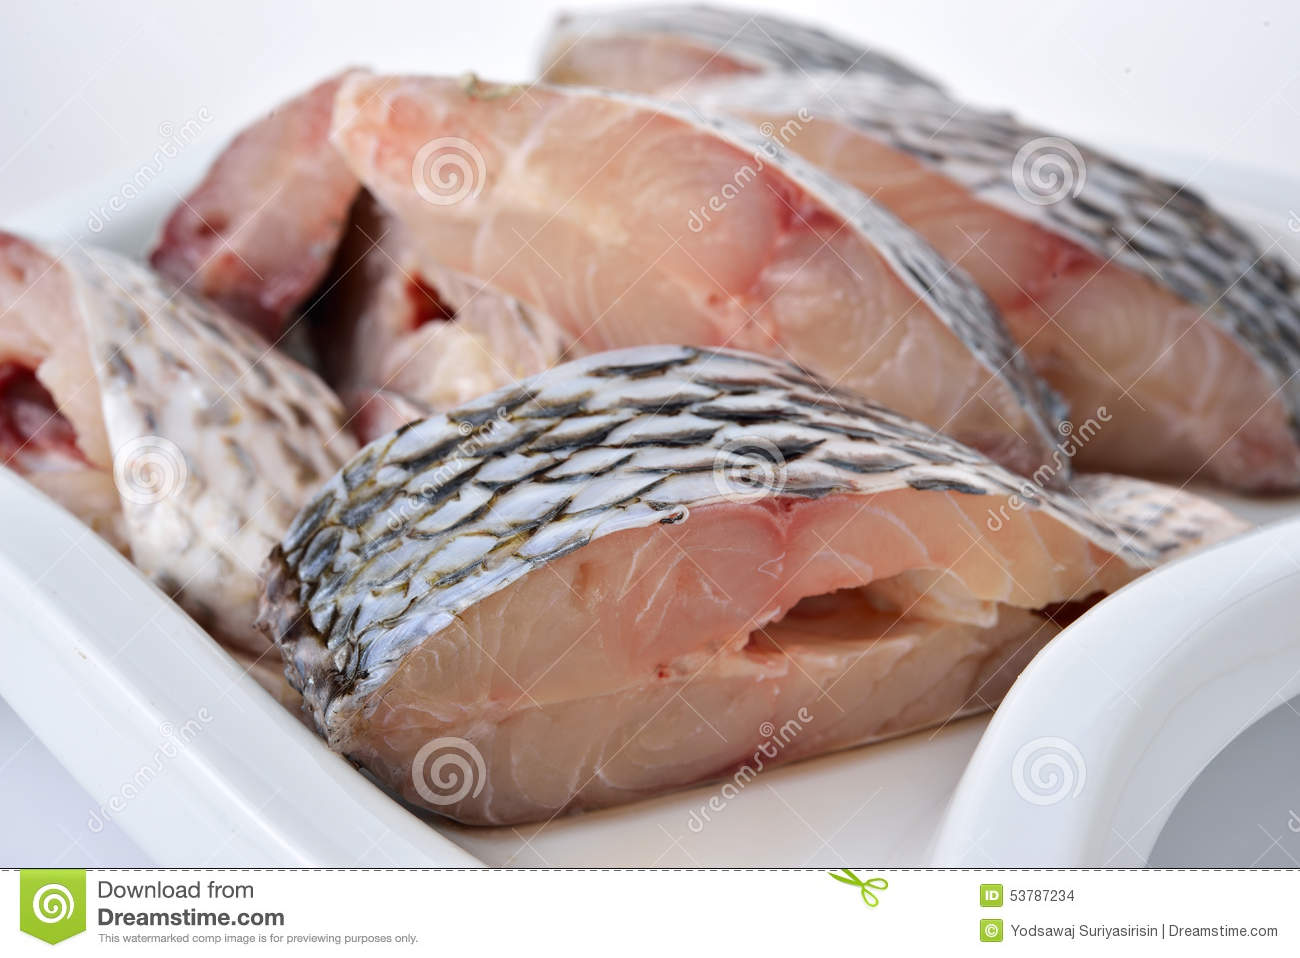 Portion cut of fresh tilapia fish stock photo image for What type of fish is tilapia